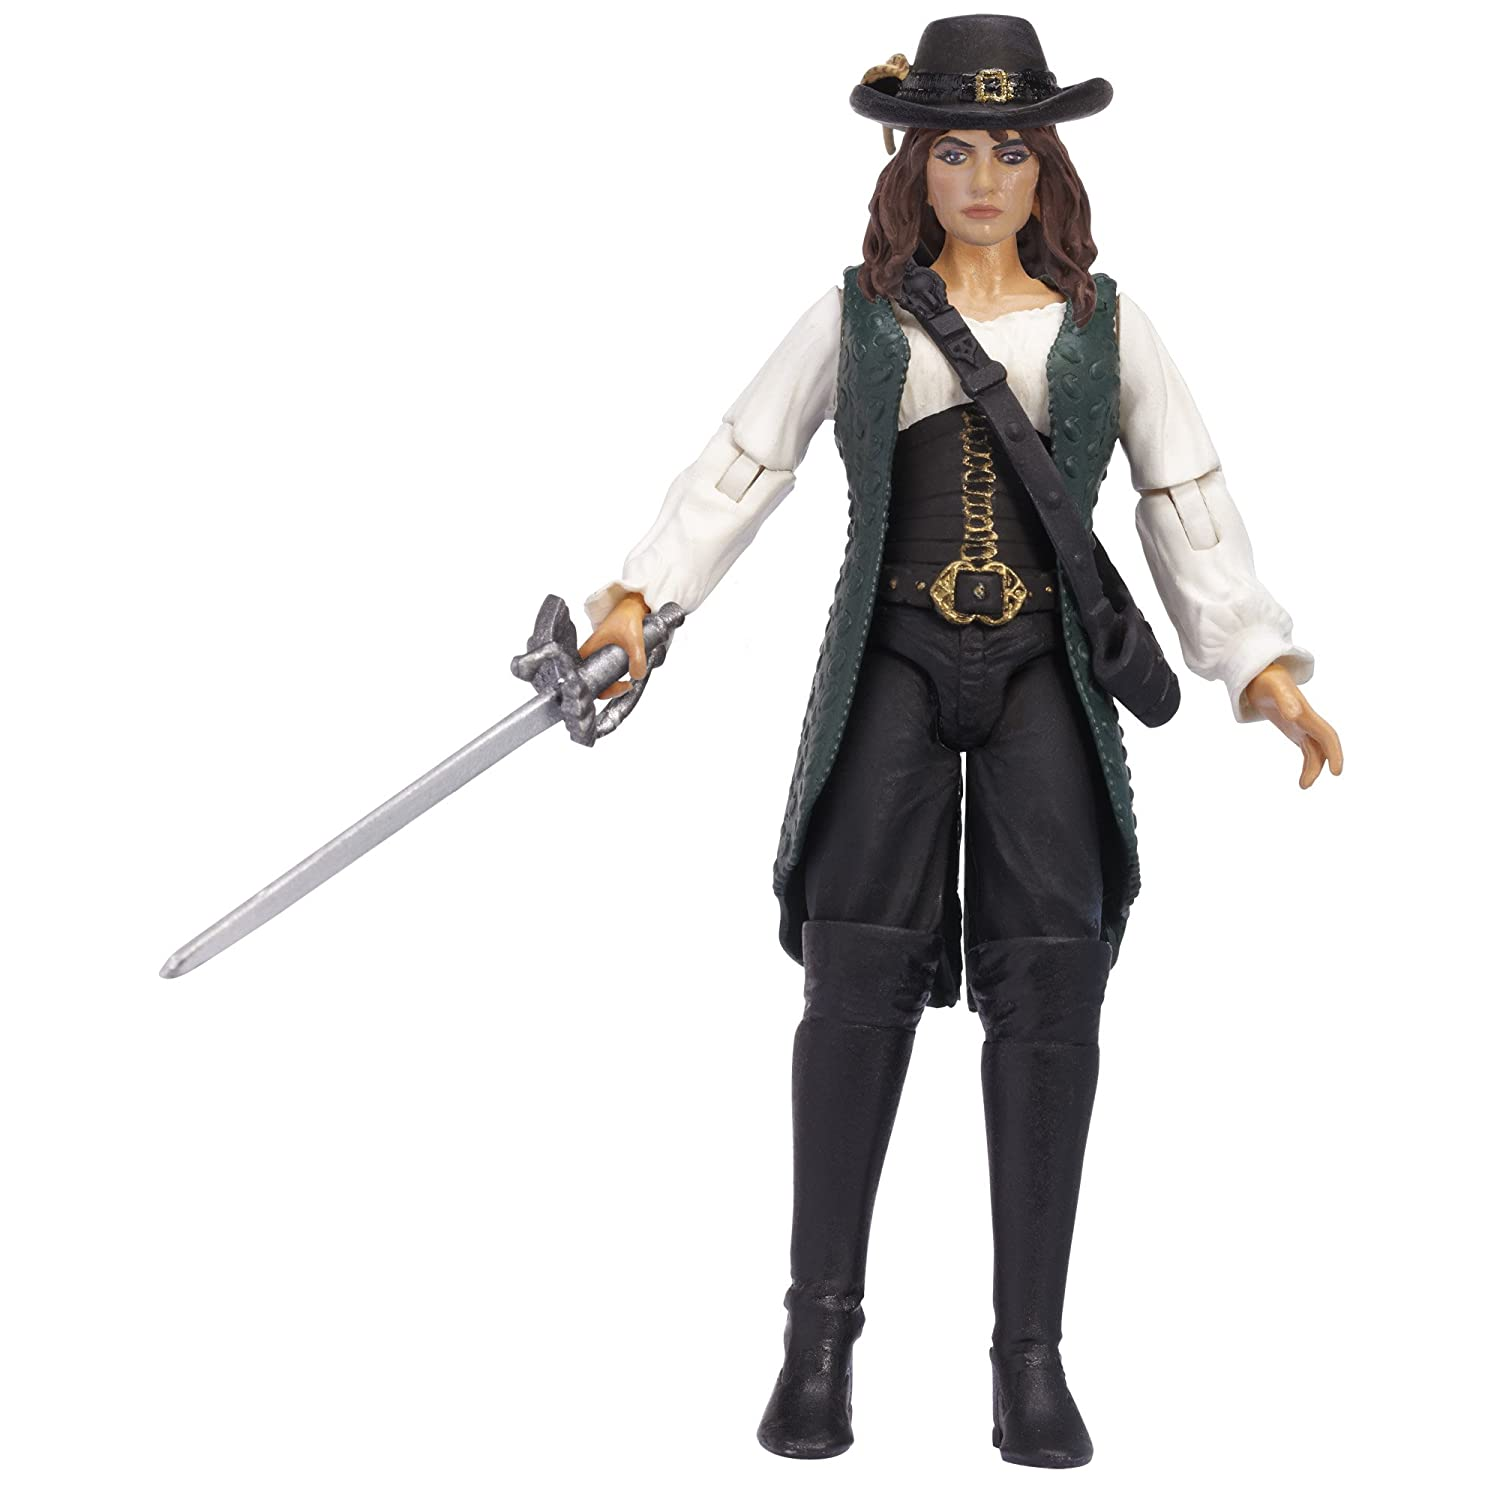 Pirates Of The Caribbean Basic Figure Wave 1 Angelica V1P4 by Pirates of the Caribbean